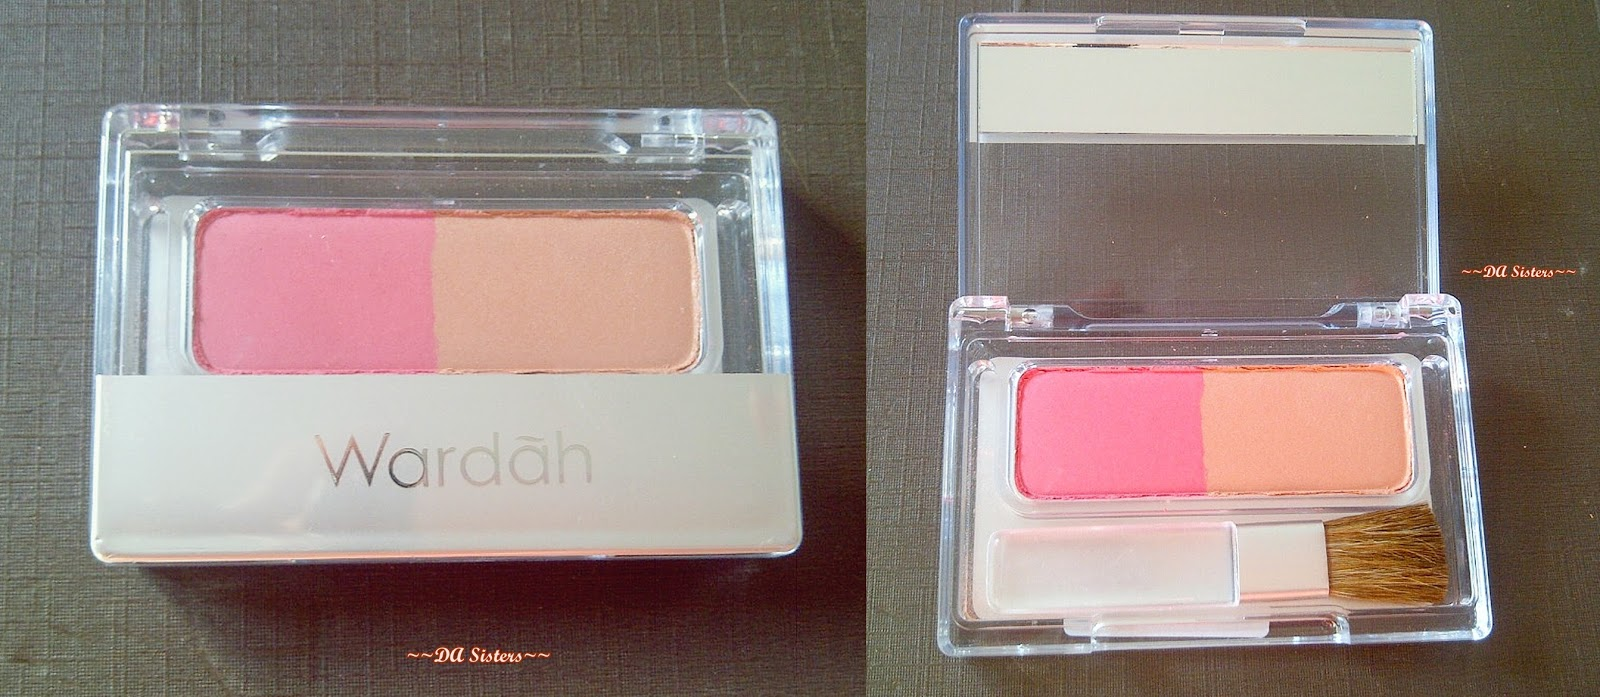 DA Sisters Blog: [Review & SWATCH] Wardah Blush On